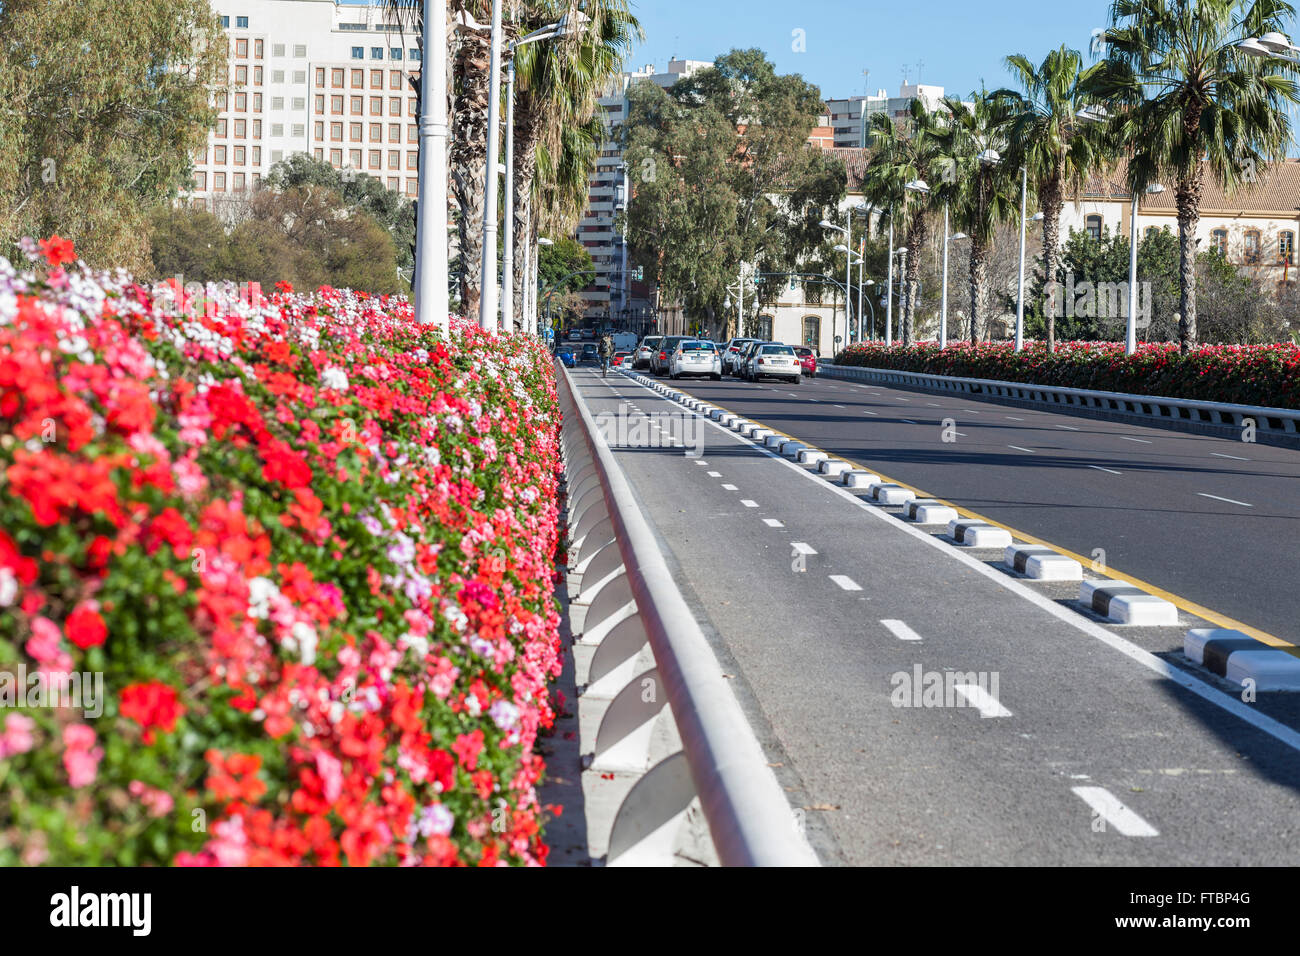 Puente de las Flores,Valencia,Spain. Stock Photo